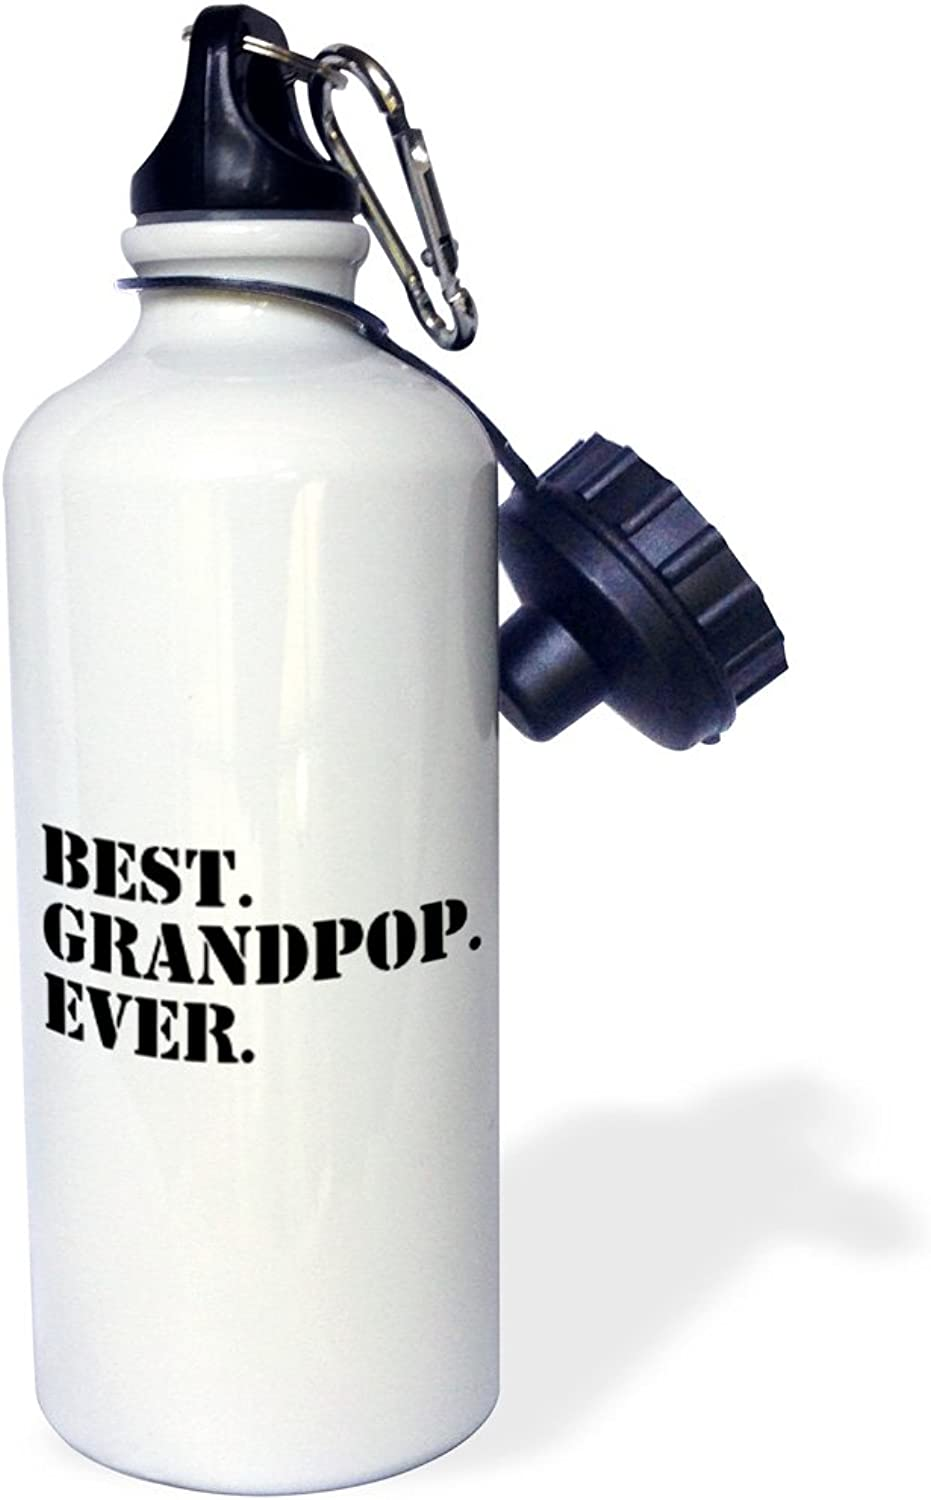 3dpink wb_151518_1 Best Grandpop EverGifts for GrandfathersGranddad Grandpa nicknamesblack textfamily gifts  Sports Water Bottle, 21 oz, White